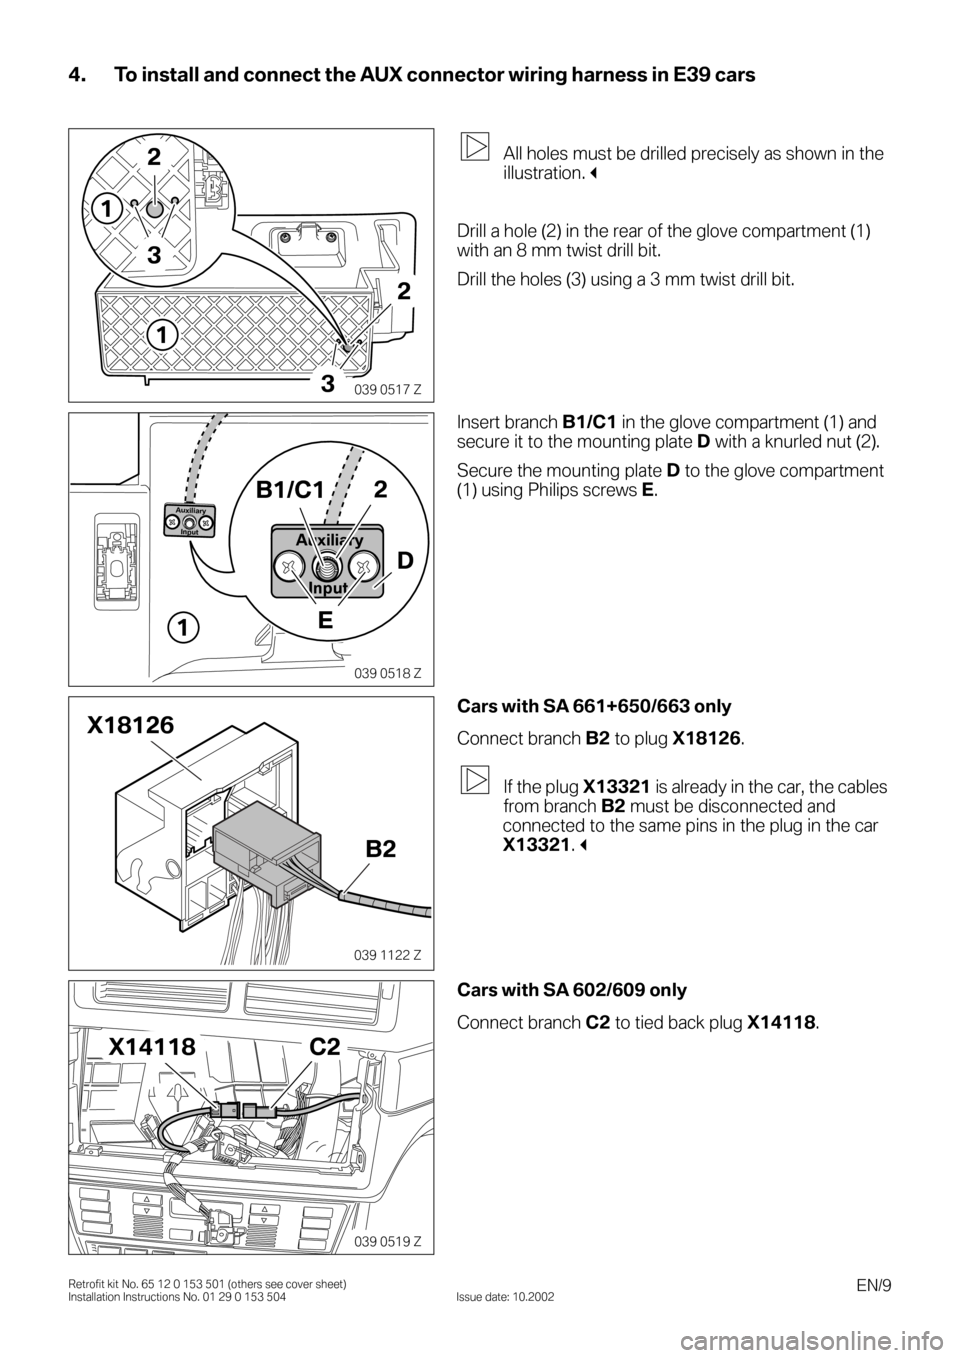 BMW 3 SERIES 2003 E46 Auxilliary Connector Installation Instruction Manual, Page 9